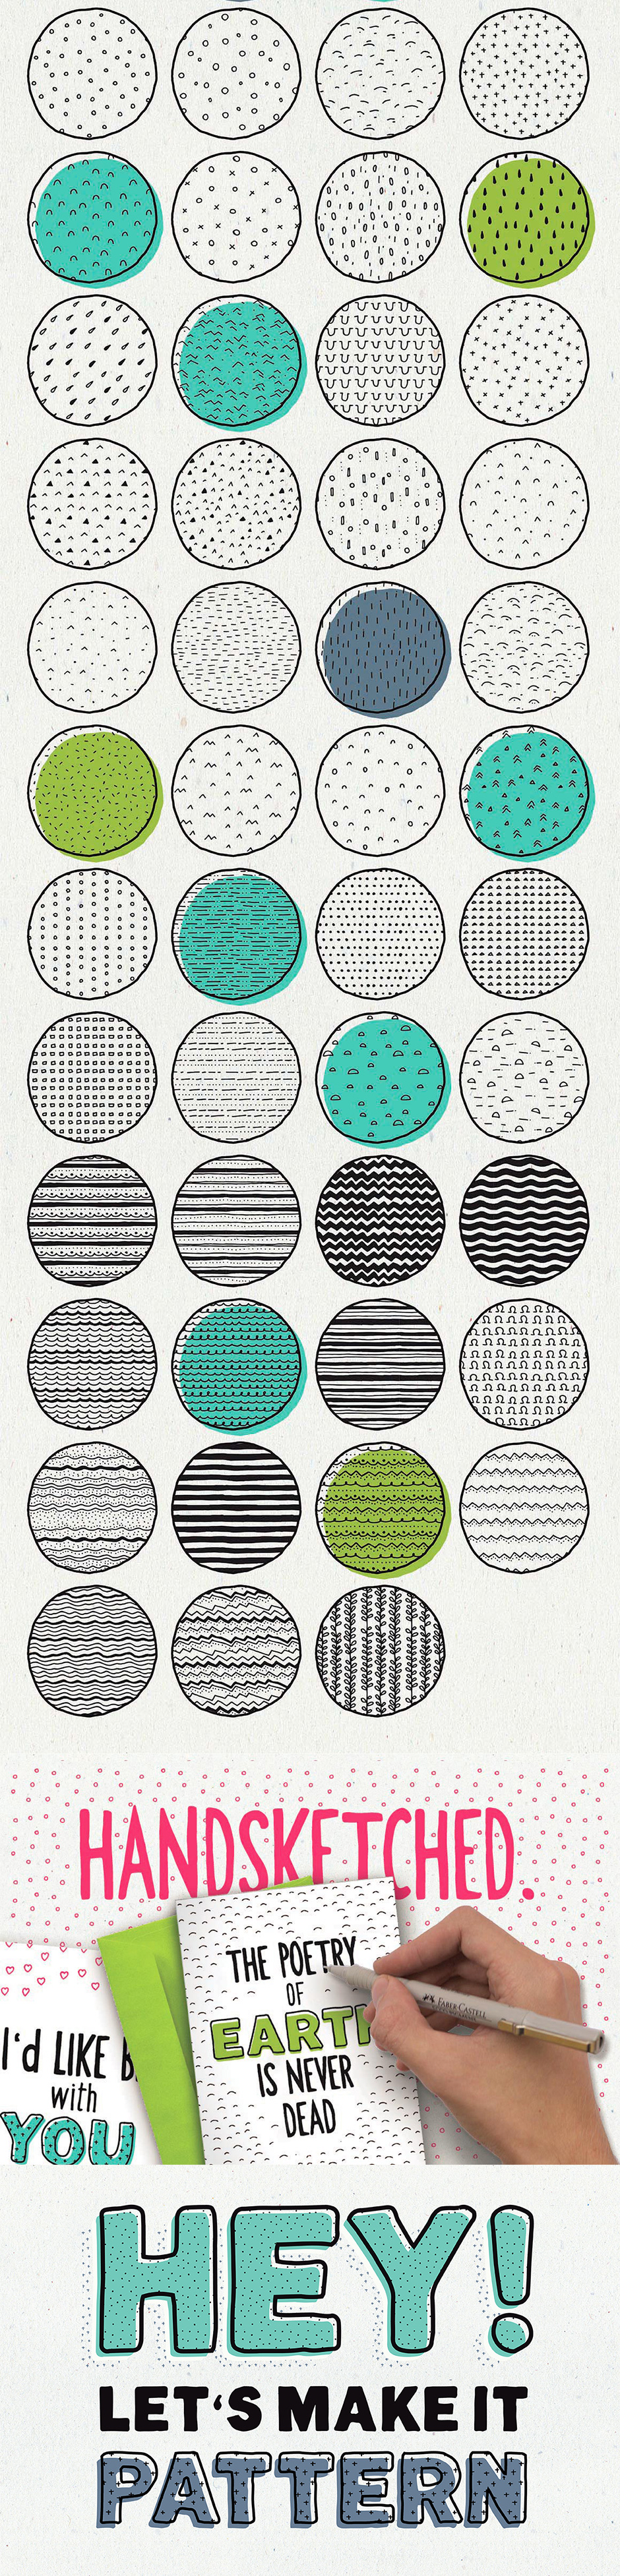 Hand-sketched Seampless Patterns II